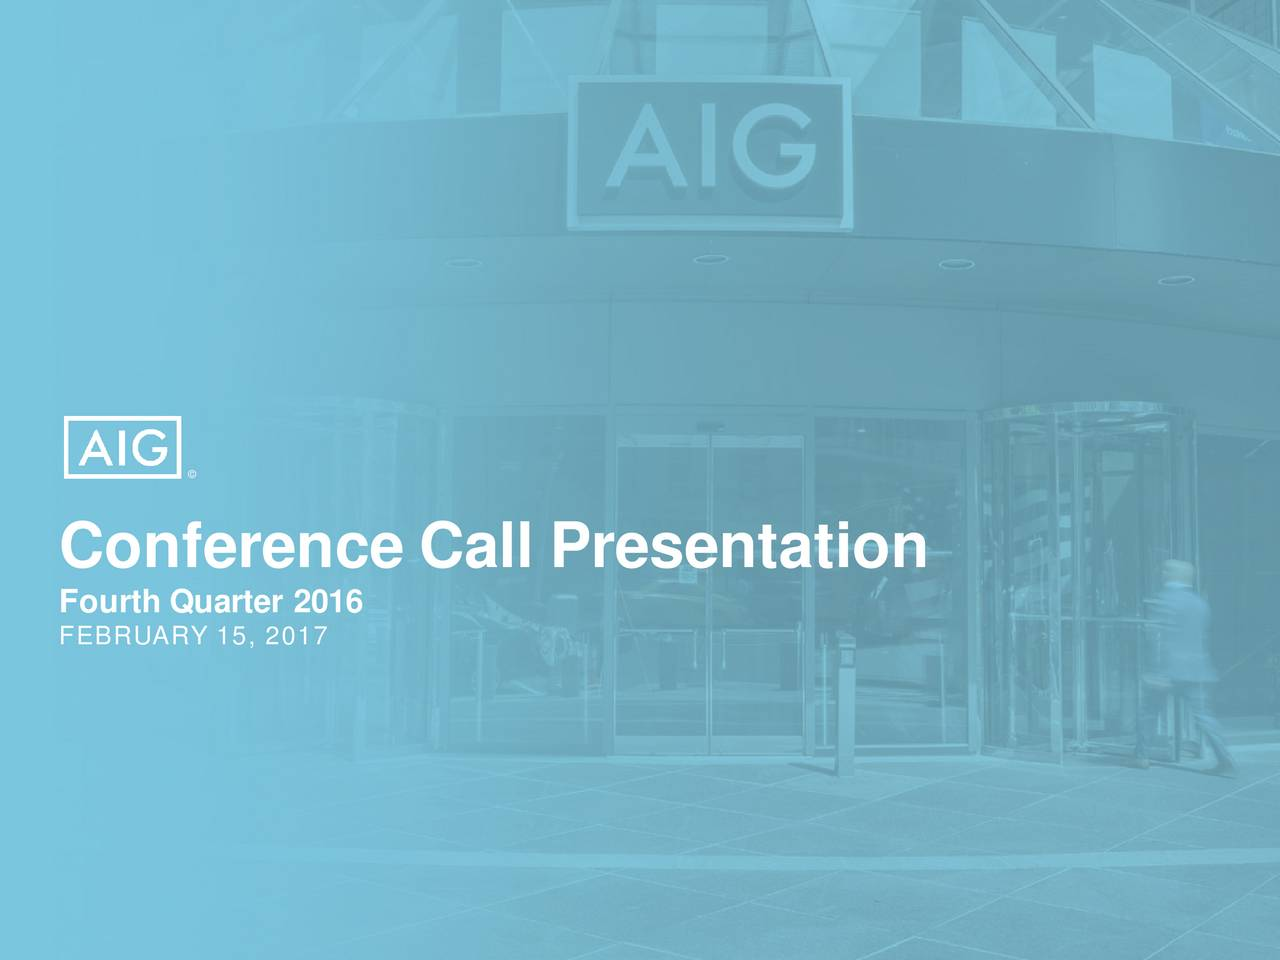 Conference Call Presentation FEBRUARY 15, 201716